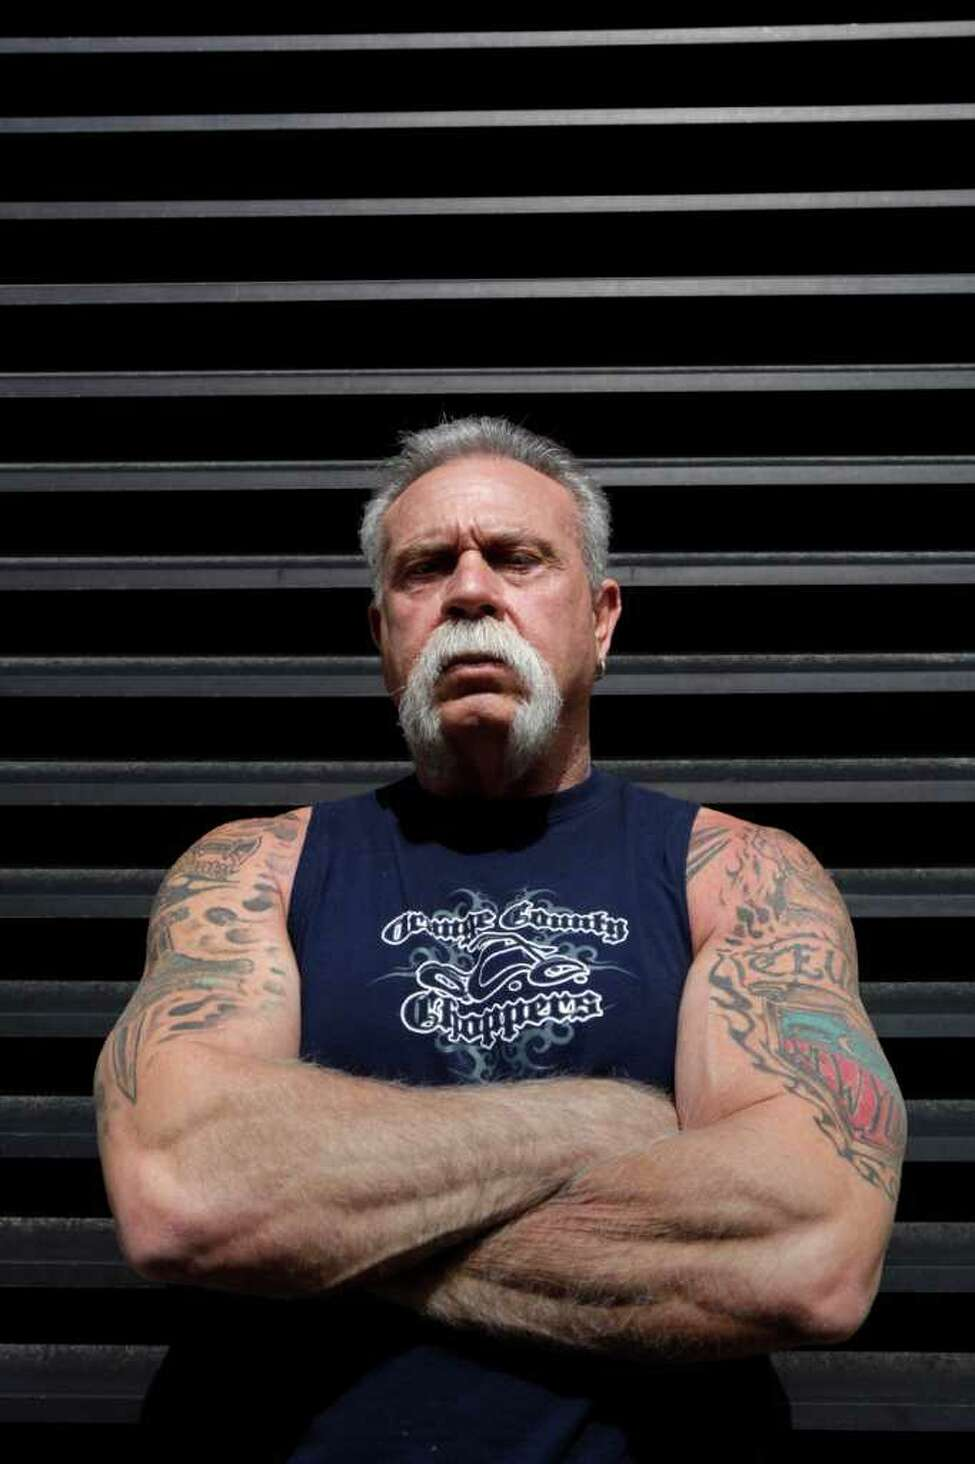 Paul Teutul, 61, the proprietor of Orange County Choppers and star of the popular Discovery Channel TV program declined comment when asked how his name and personal information appeared on business records in connection with a Florida steriods case. The records show Teutul received thousands of dollars worth of steroids over a multi-year period. (AP)